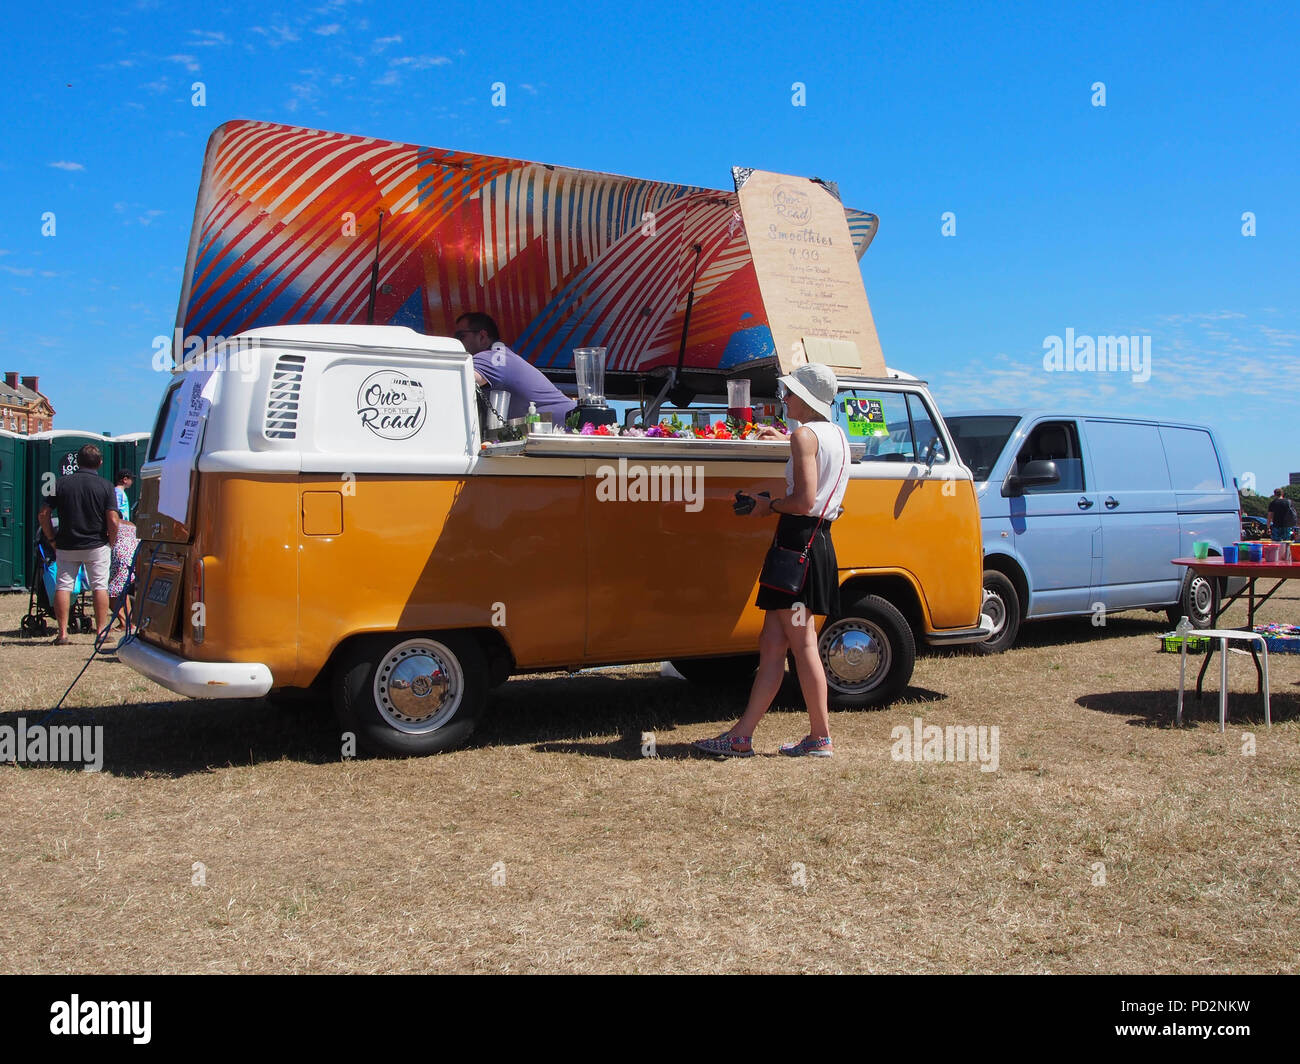 54bd016f96a0 A classic VW campervan converted into a mobile coffee shop and juice ...